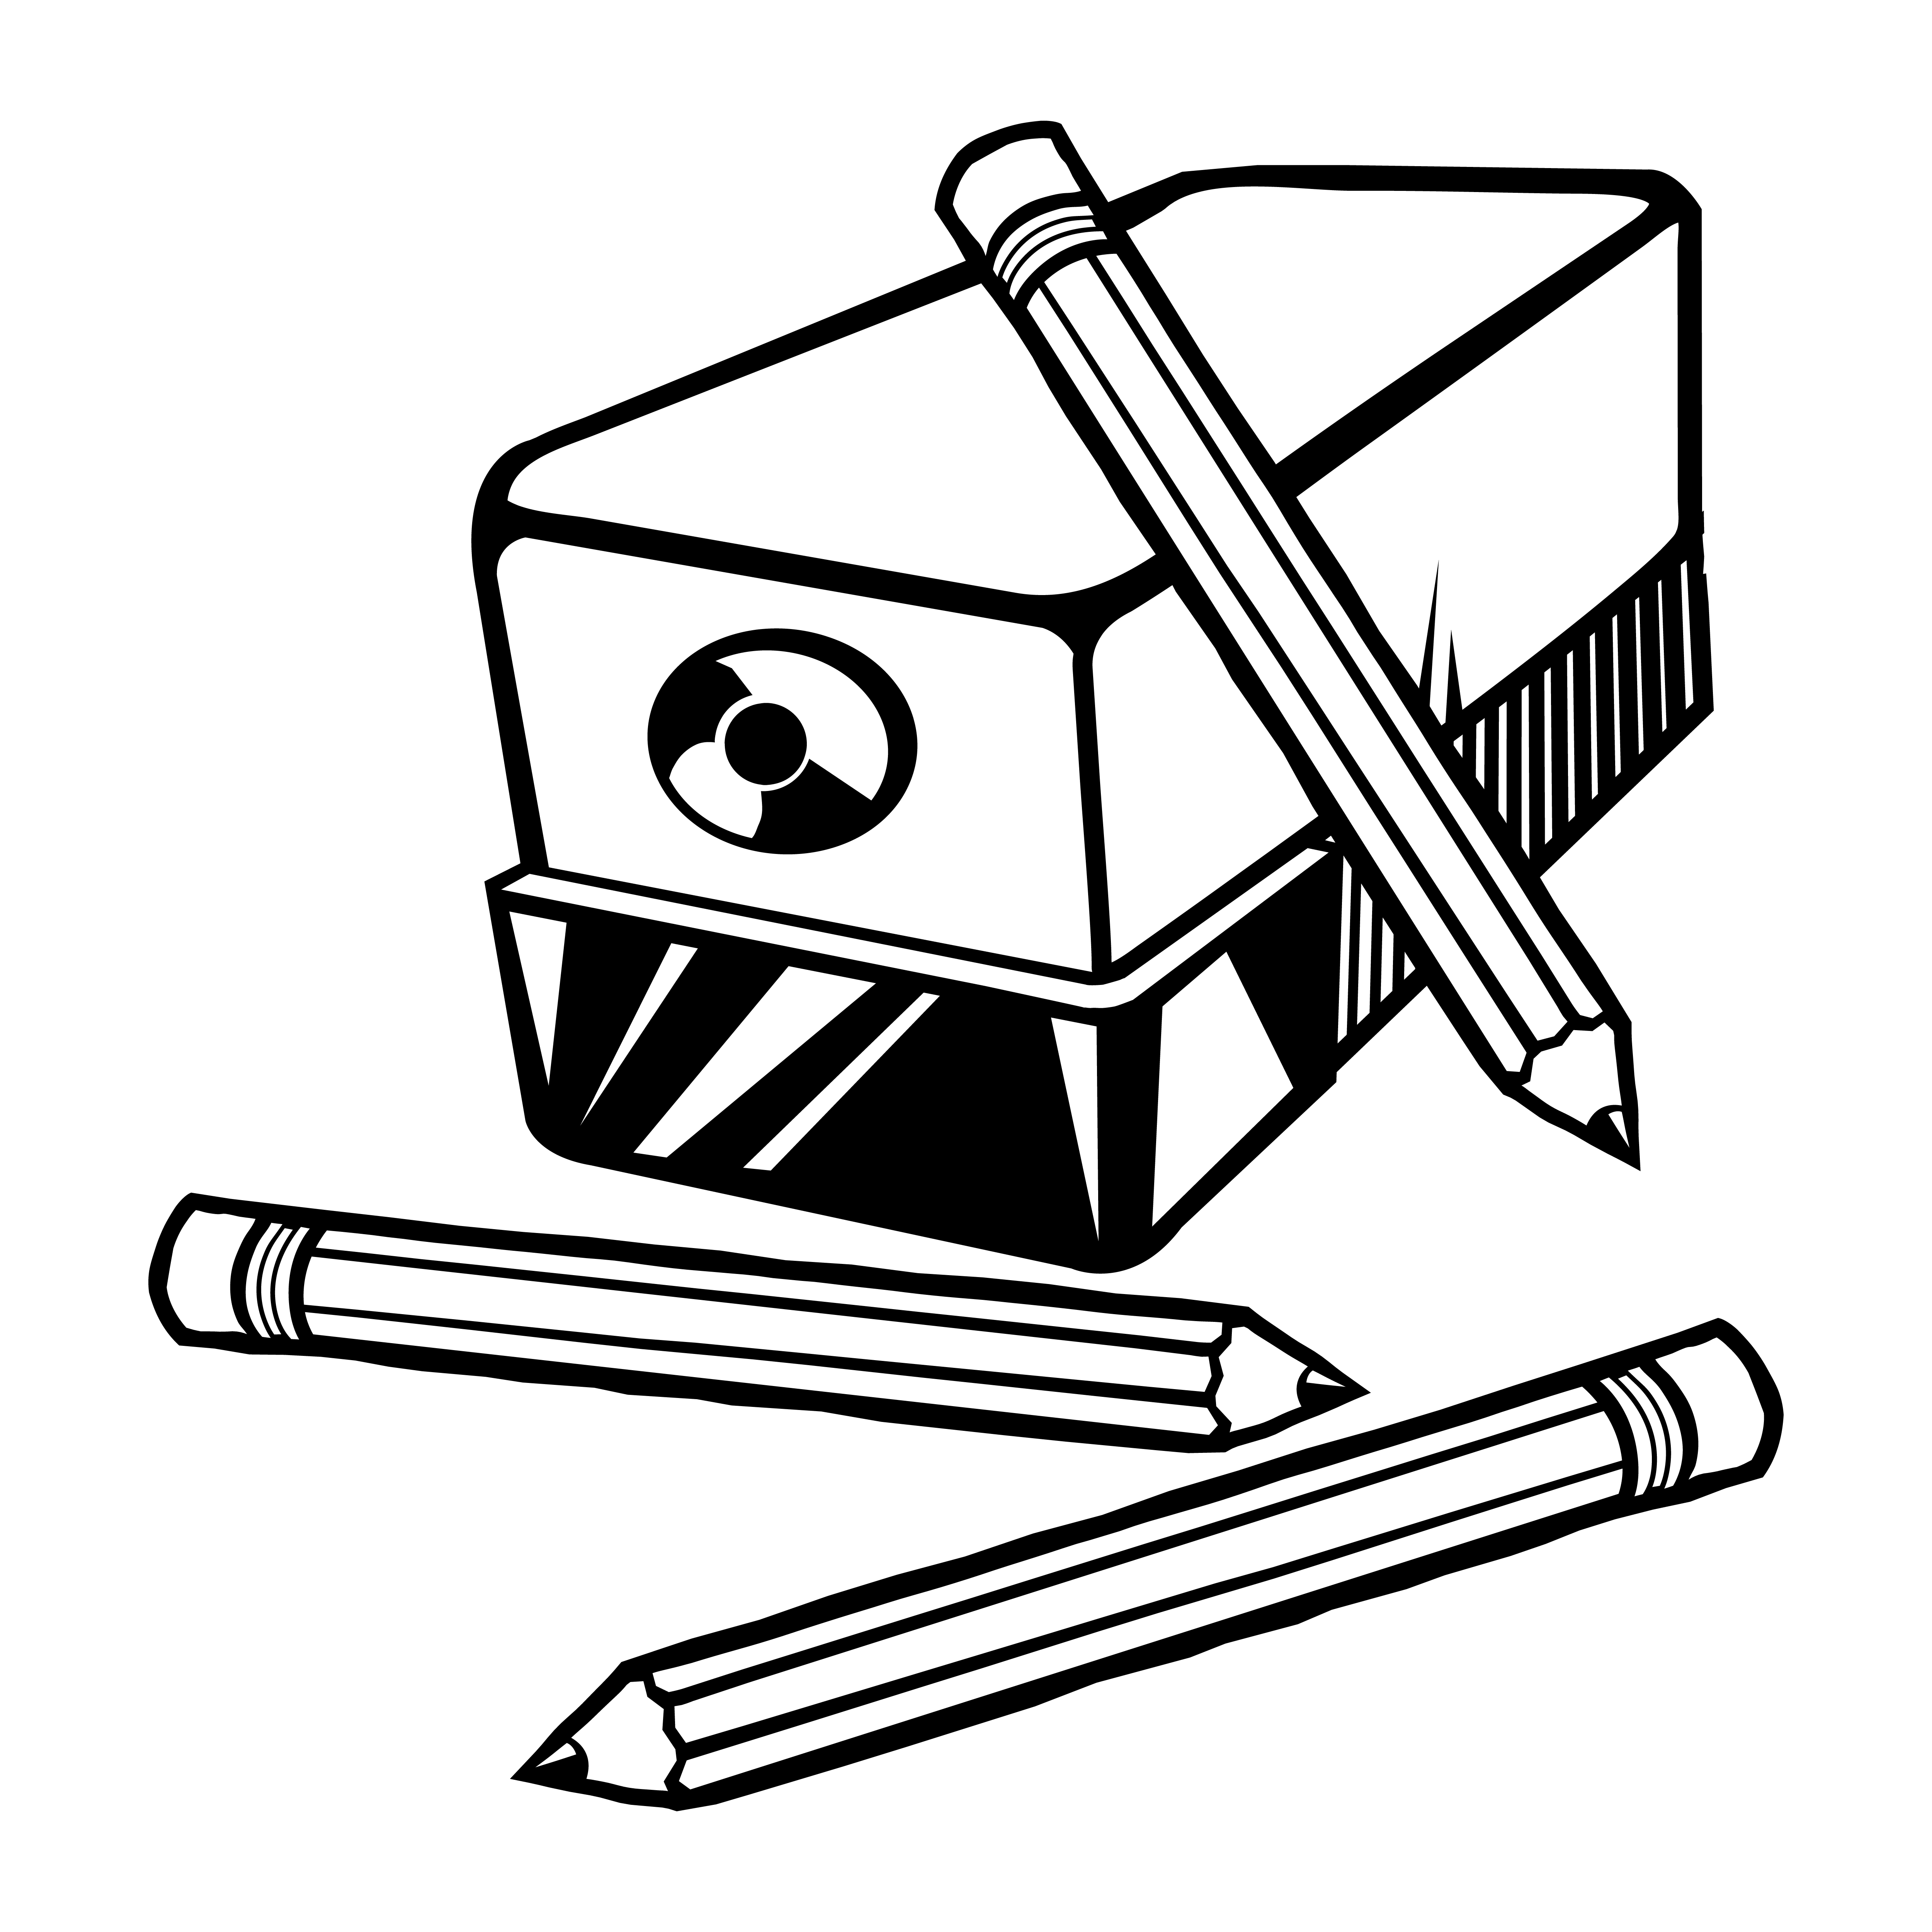 Vector Illustration Of An Electric Pencil Sharpener With